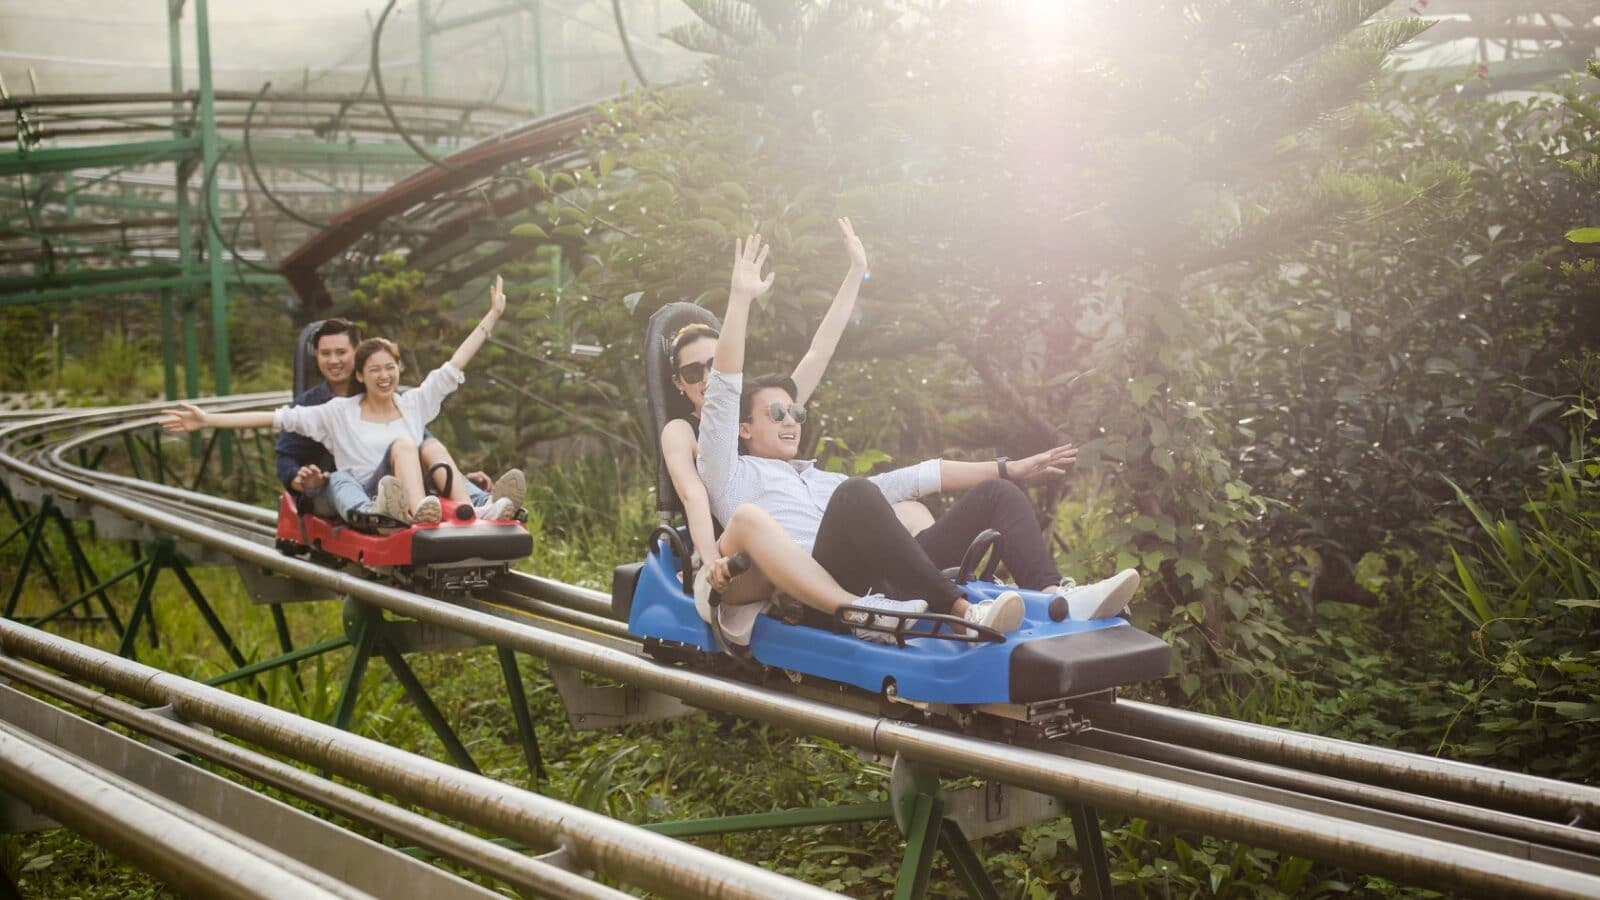 Image of the Sun World Ba Na Hills alpine coaster in Vietnam